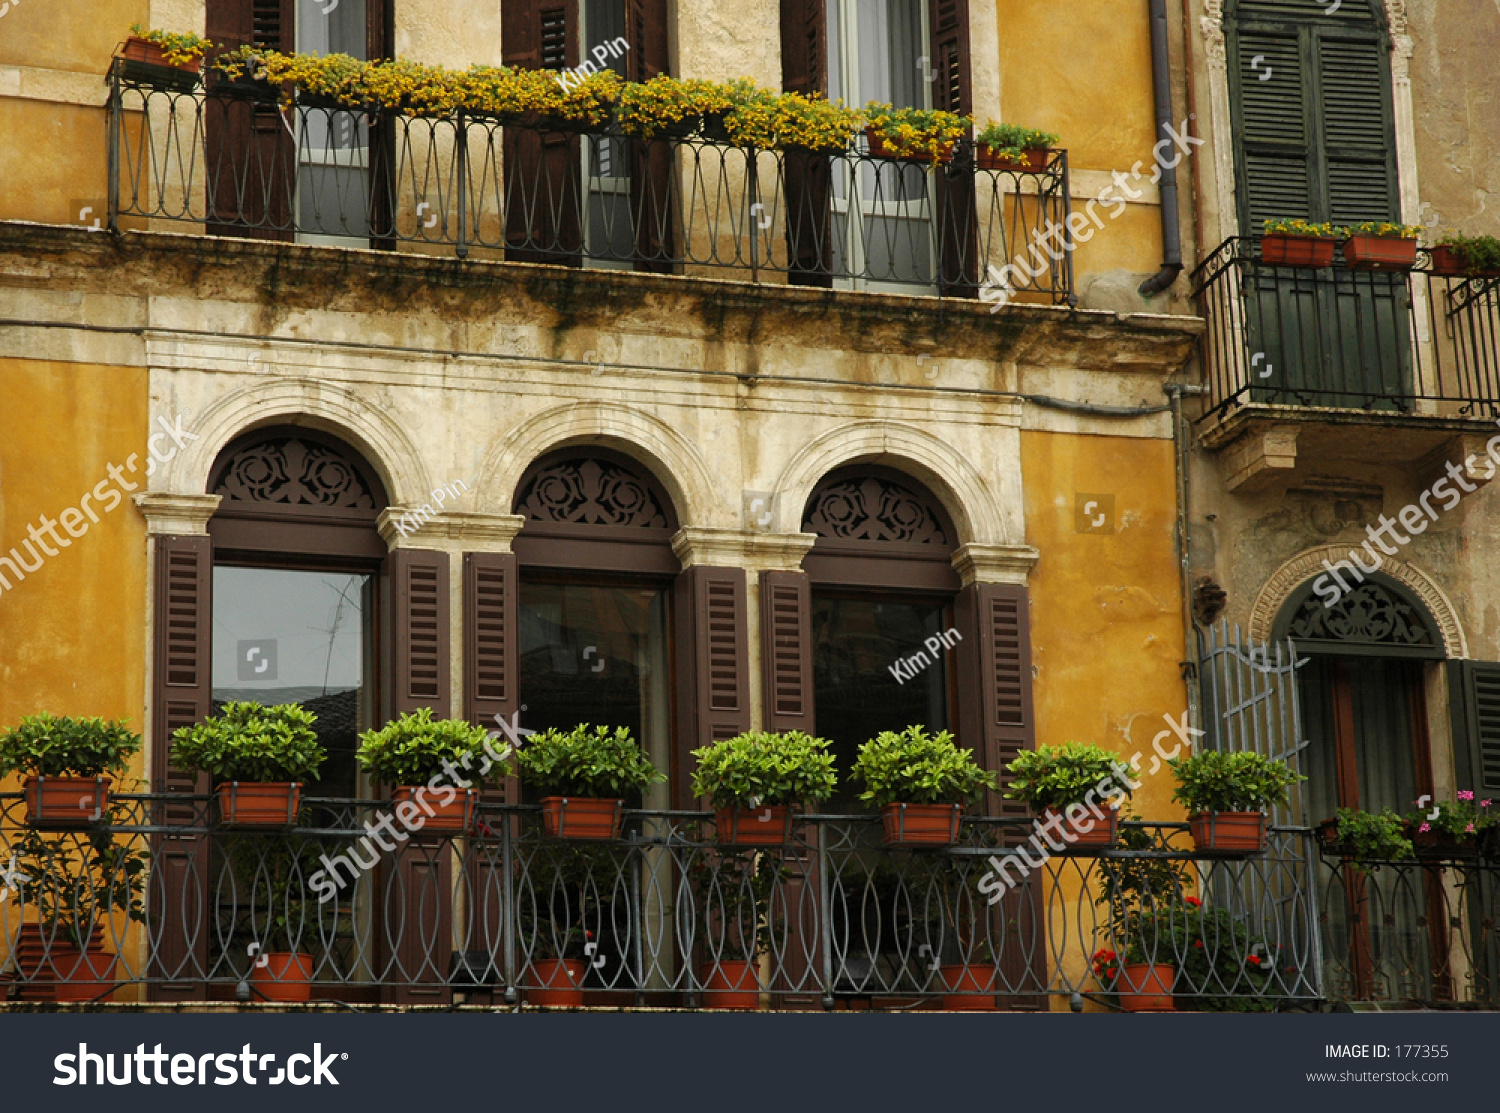 Balcony in verona italy stock photo 177355 shutterstock for Balcony in italian